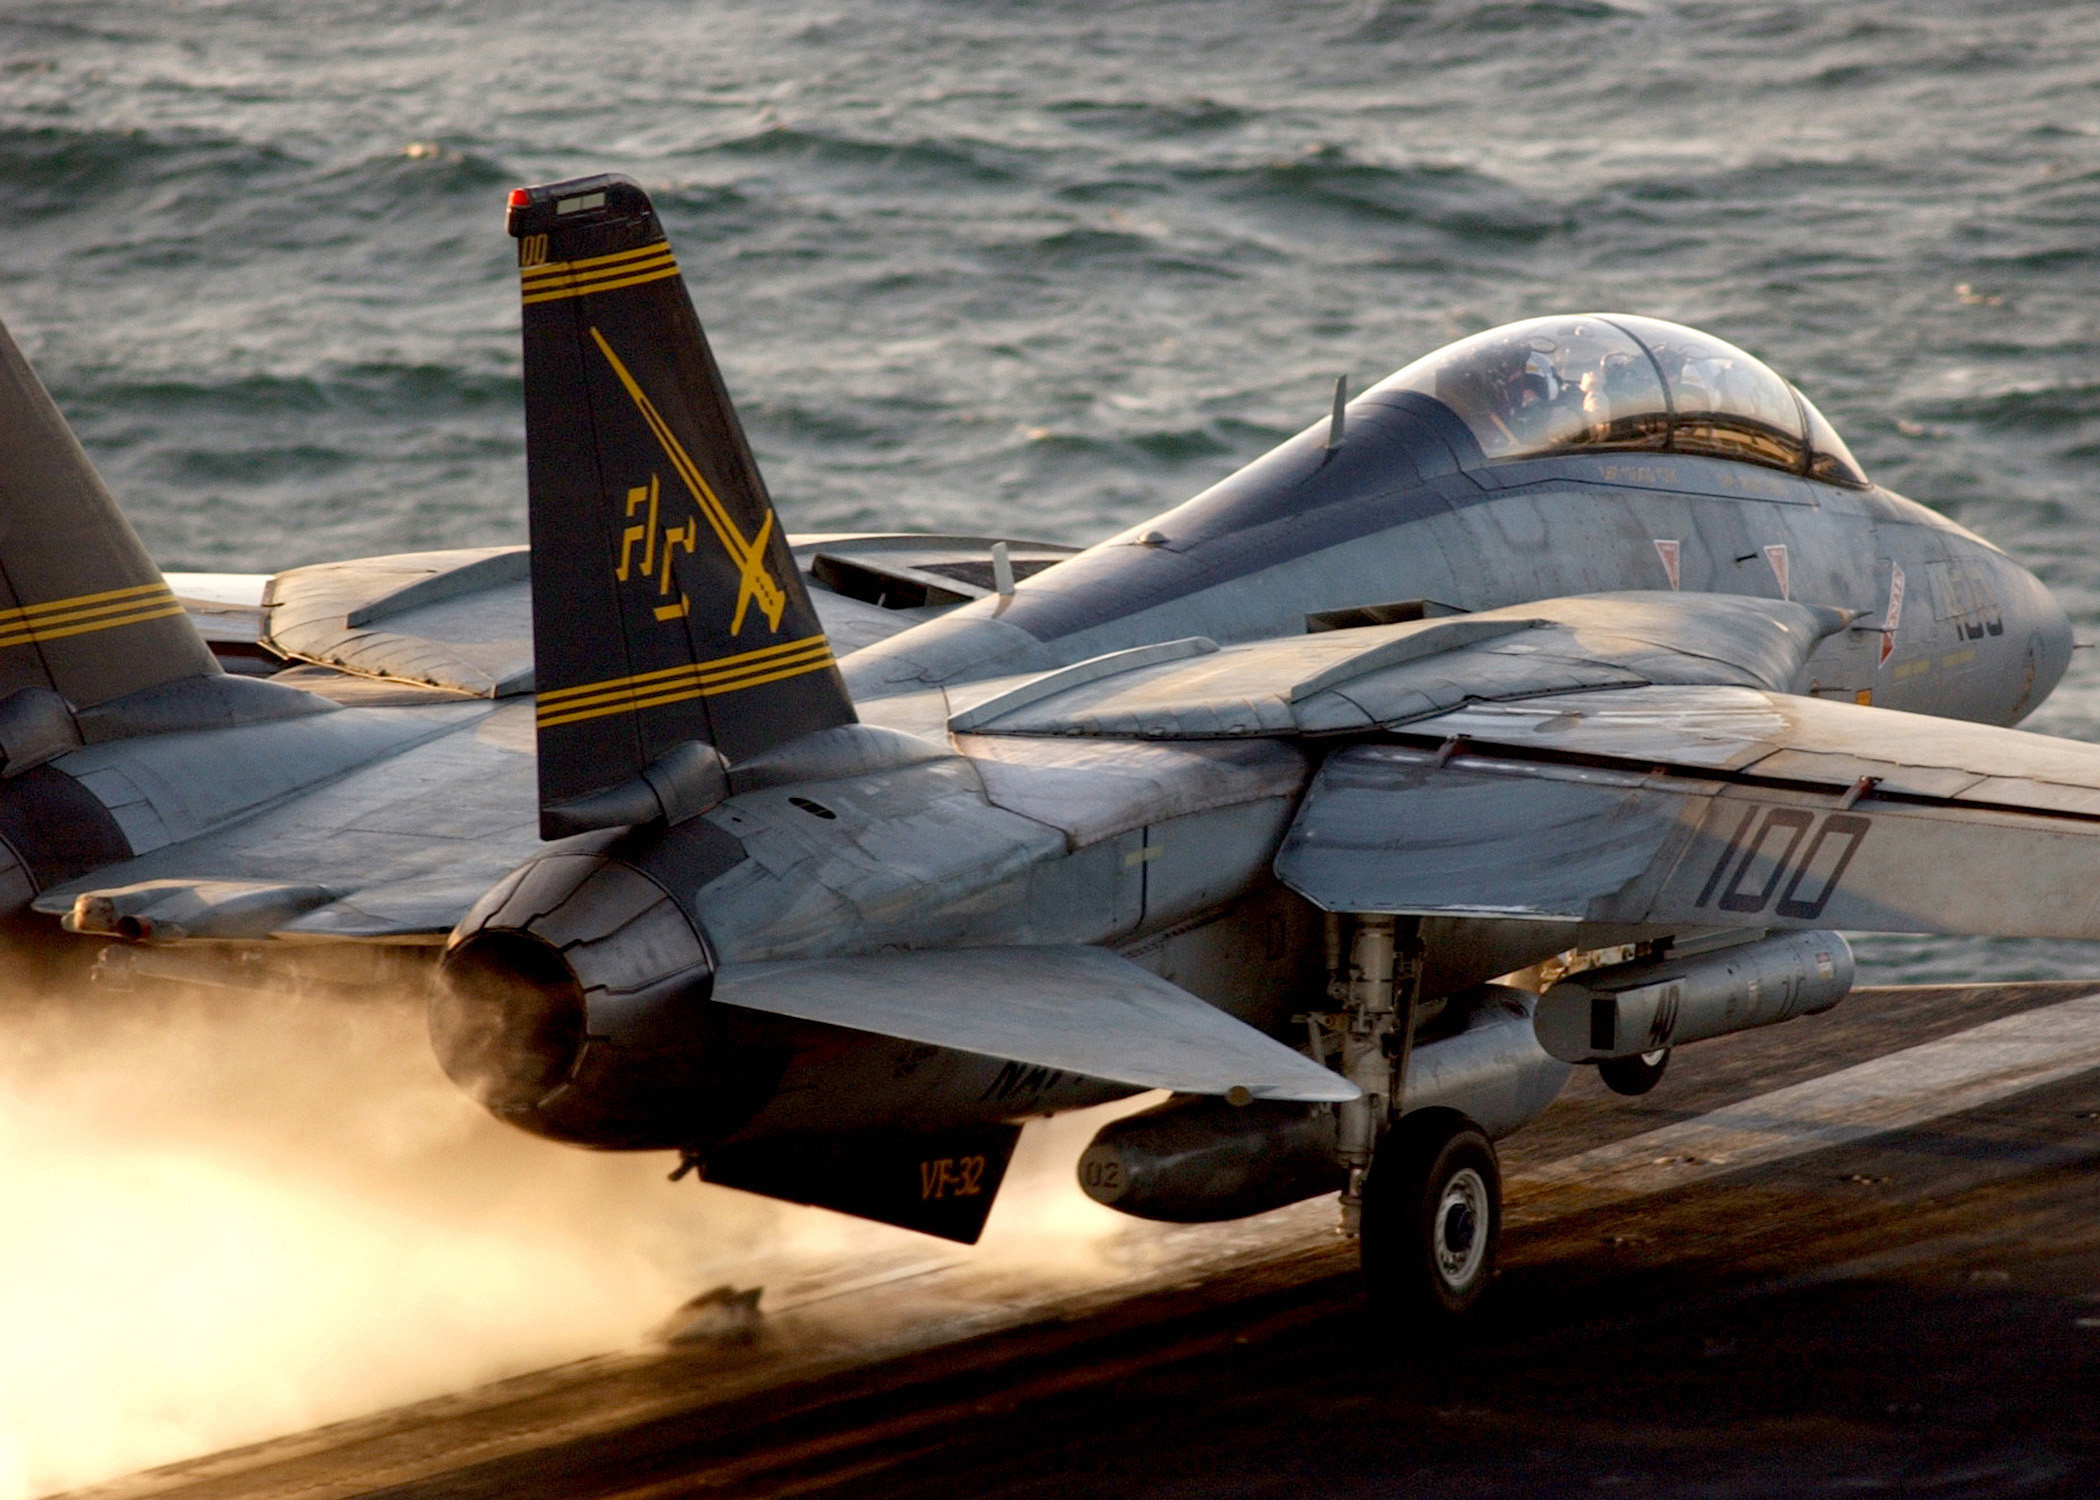 aircrafts military Navy f-14 HD Wallpaper